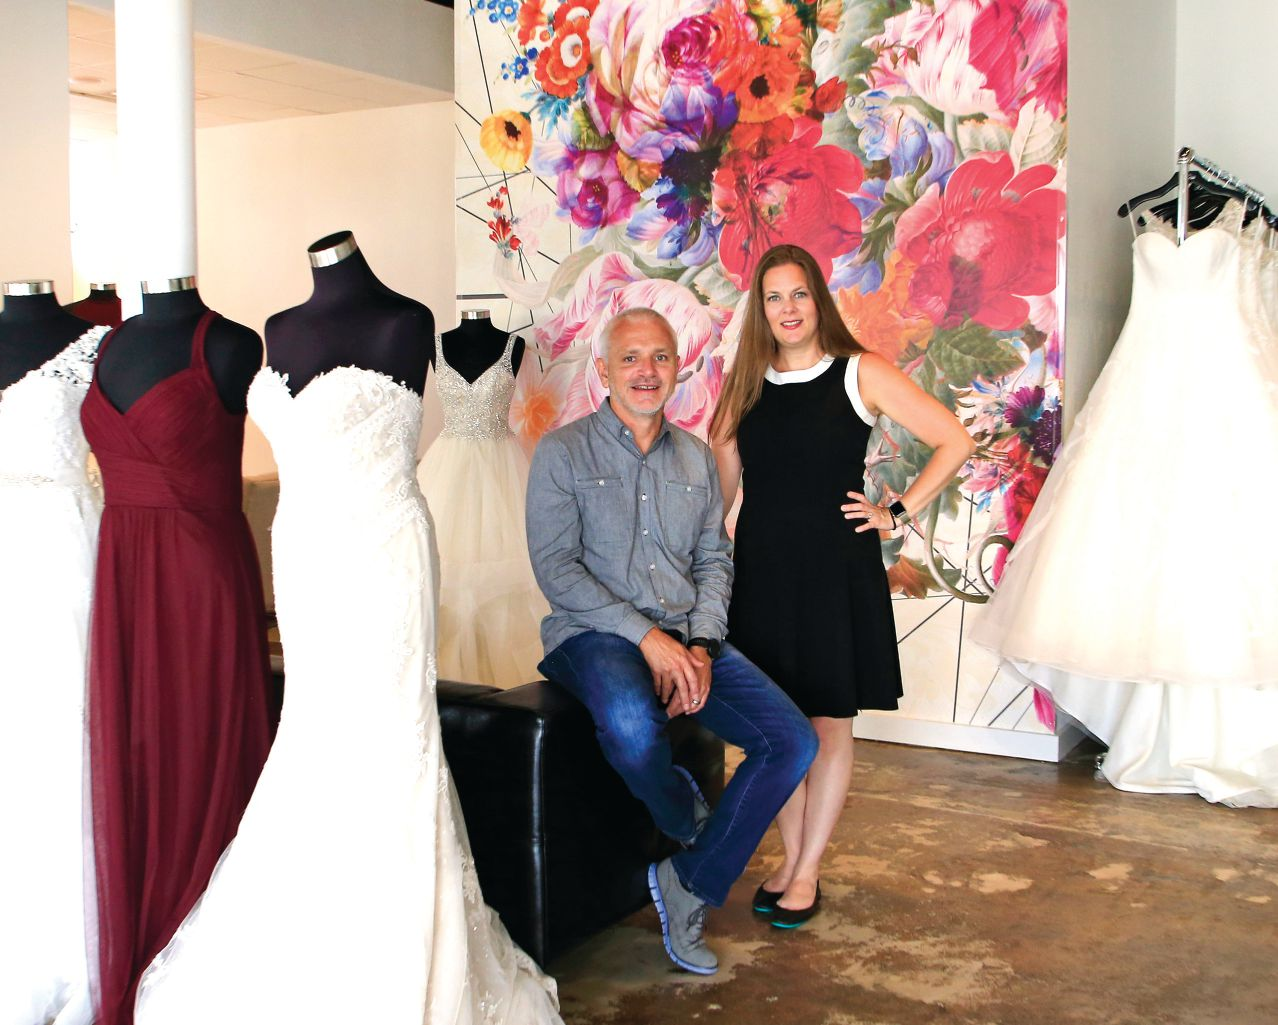 J.T. and Wendy Holsomback, owners of Bliss Bridal Salon, have renovated a spacious building in Historic Handley.